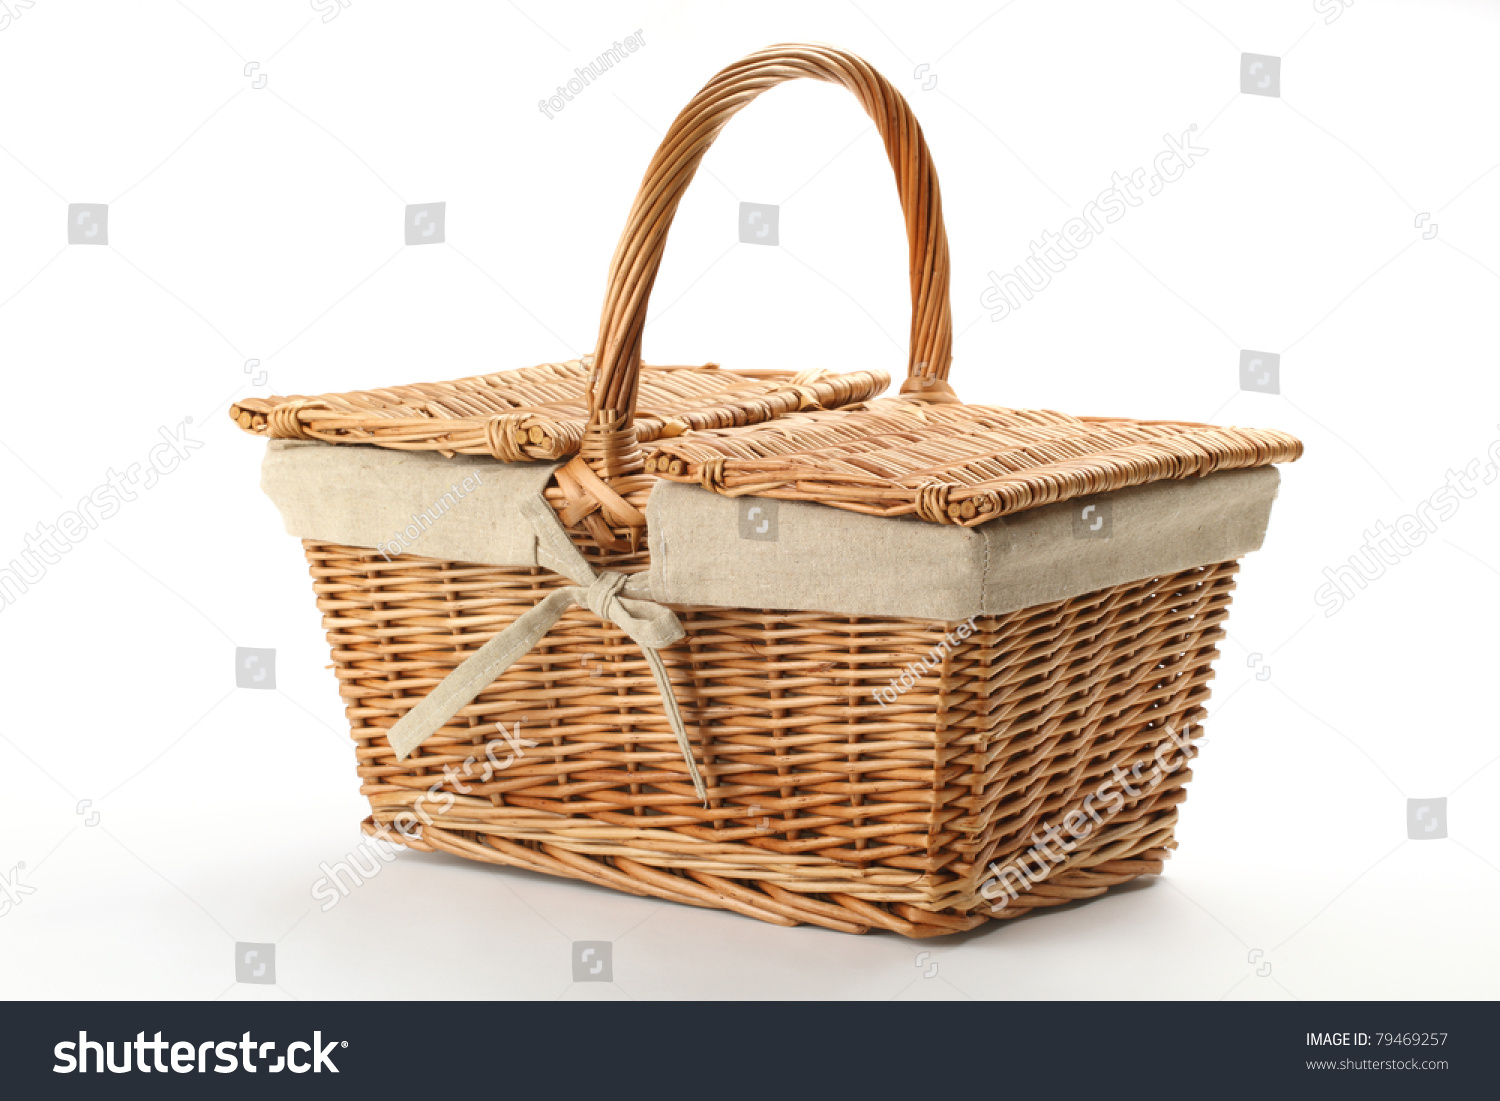 how to make a wicker picnic basket